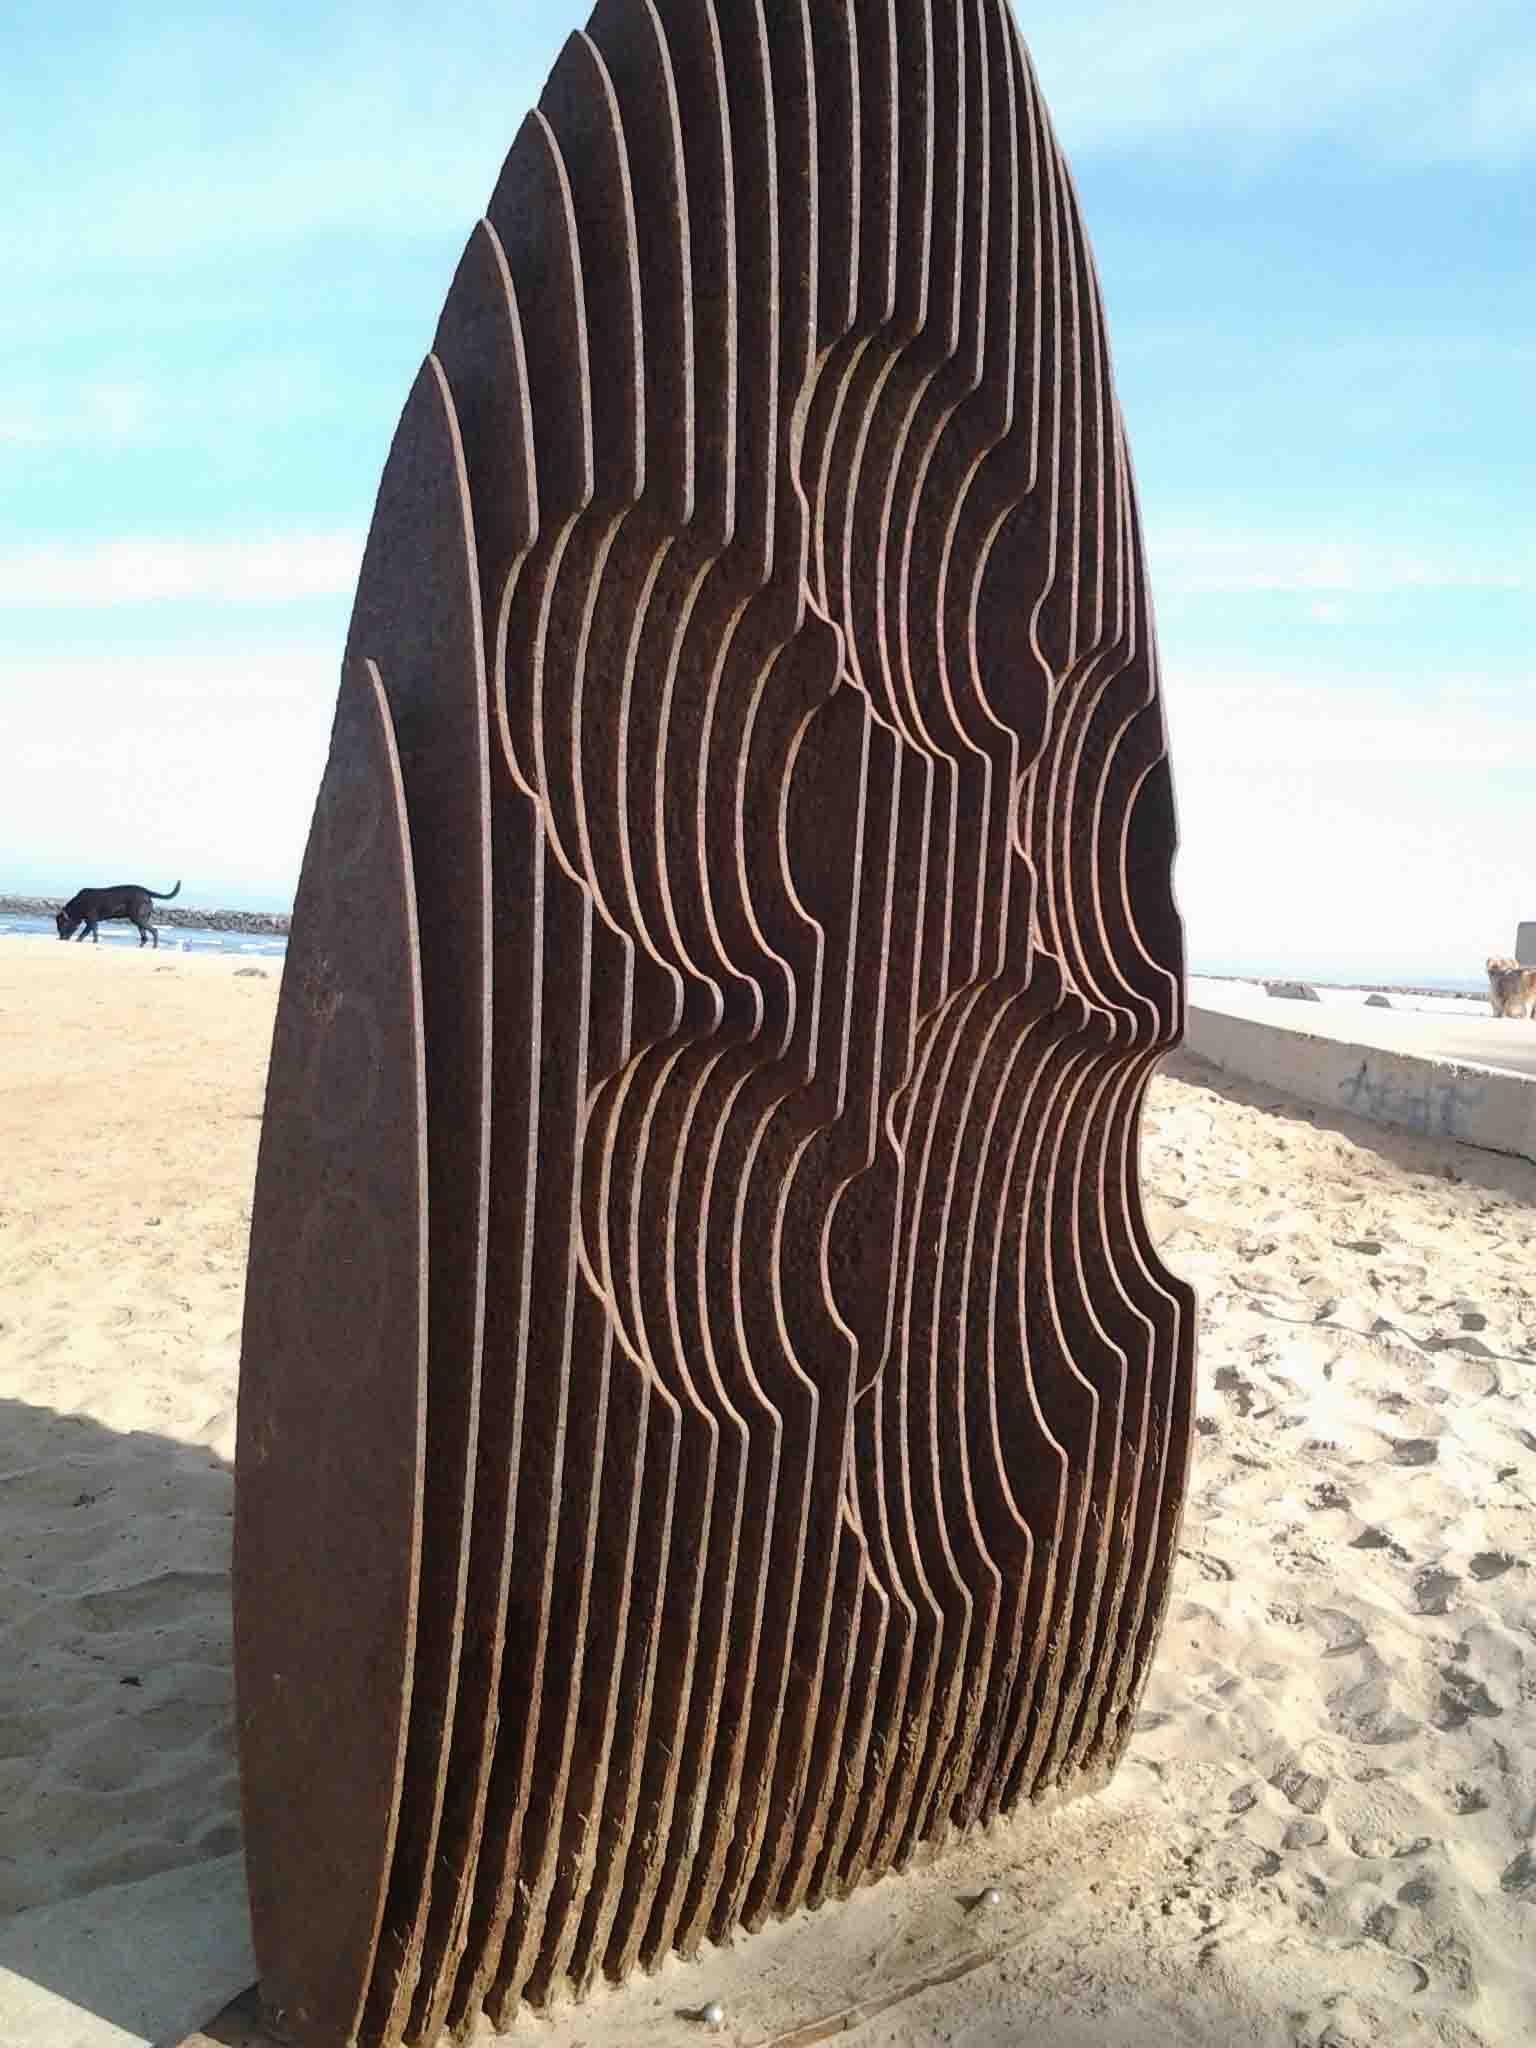 Dog Beach surfboard/pawprint sculpture                                    Photo: (c) Barb Ayers, DogDiary.org